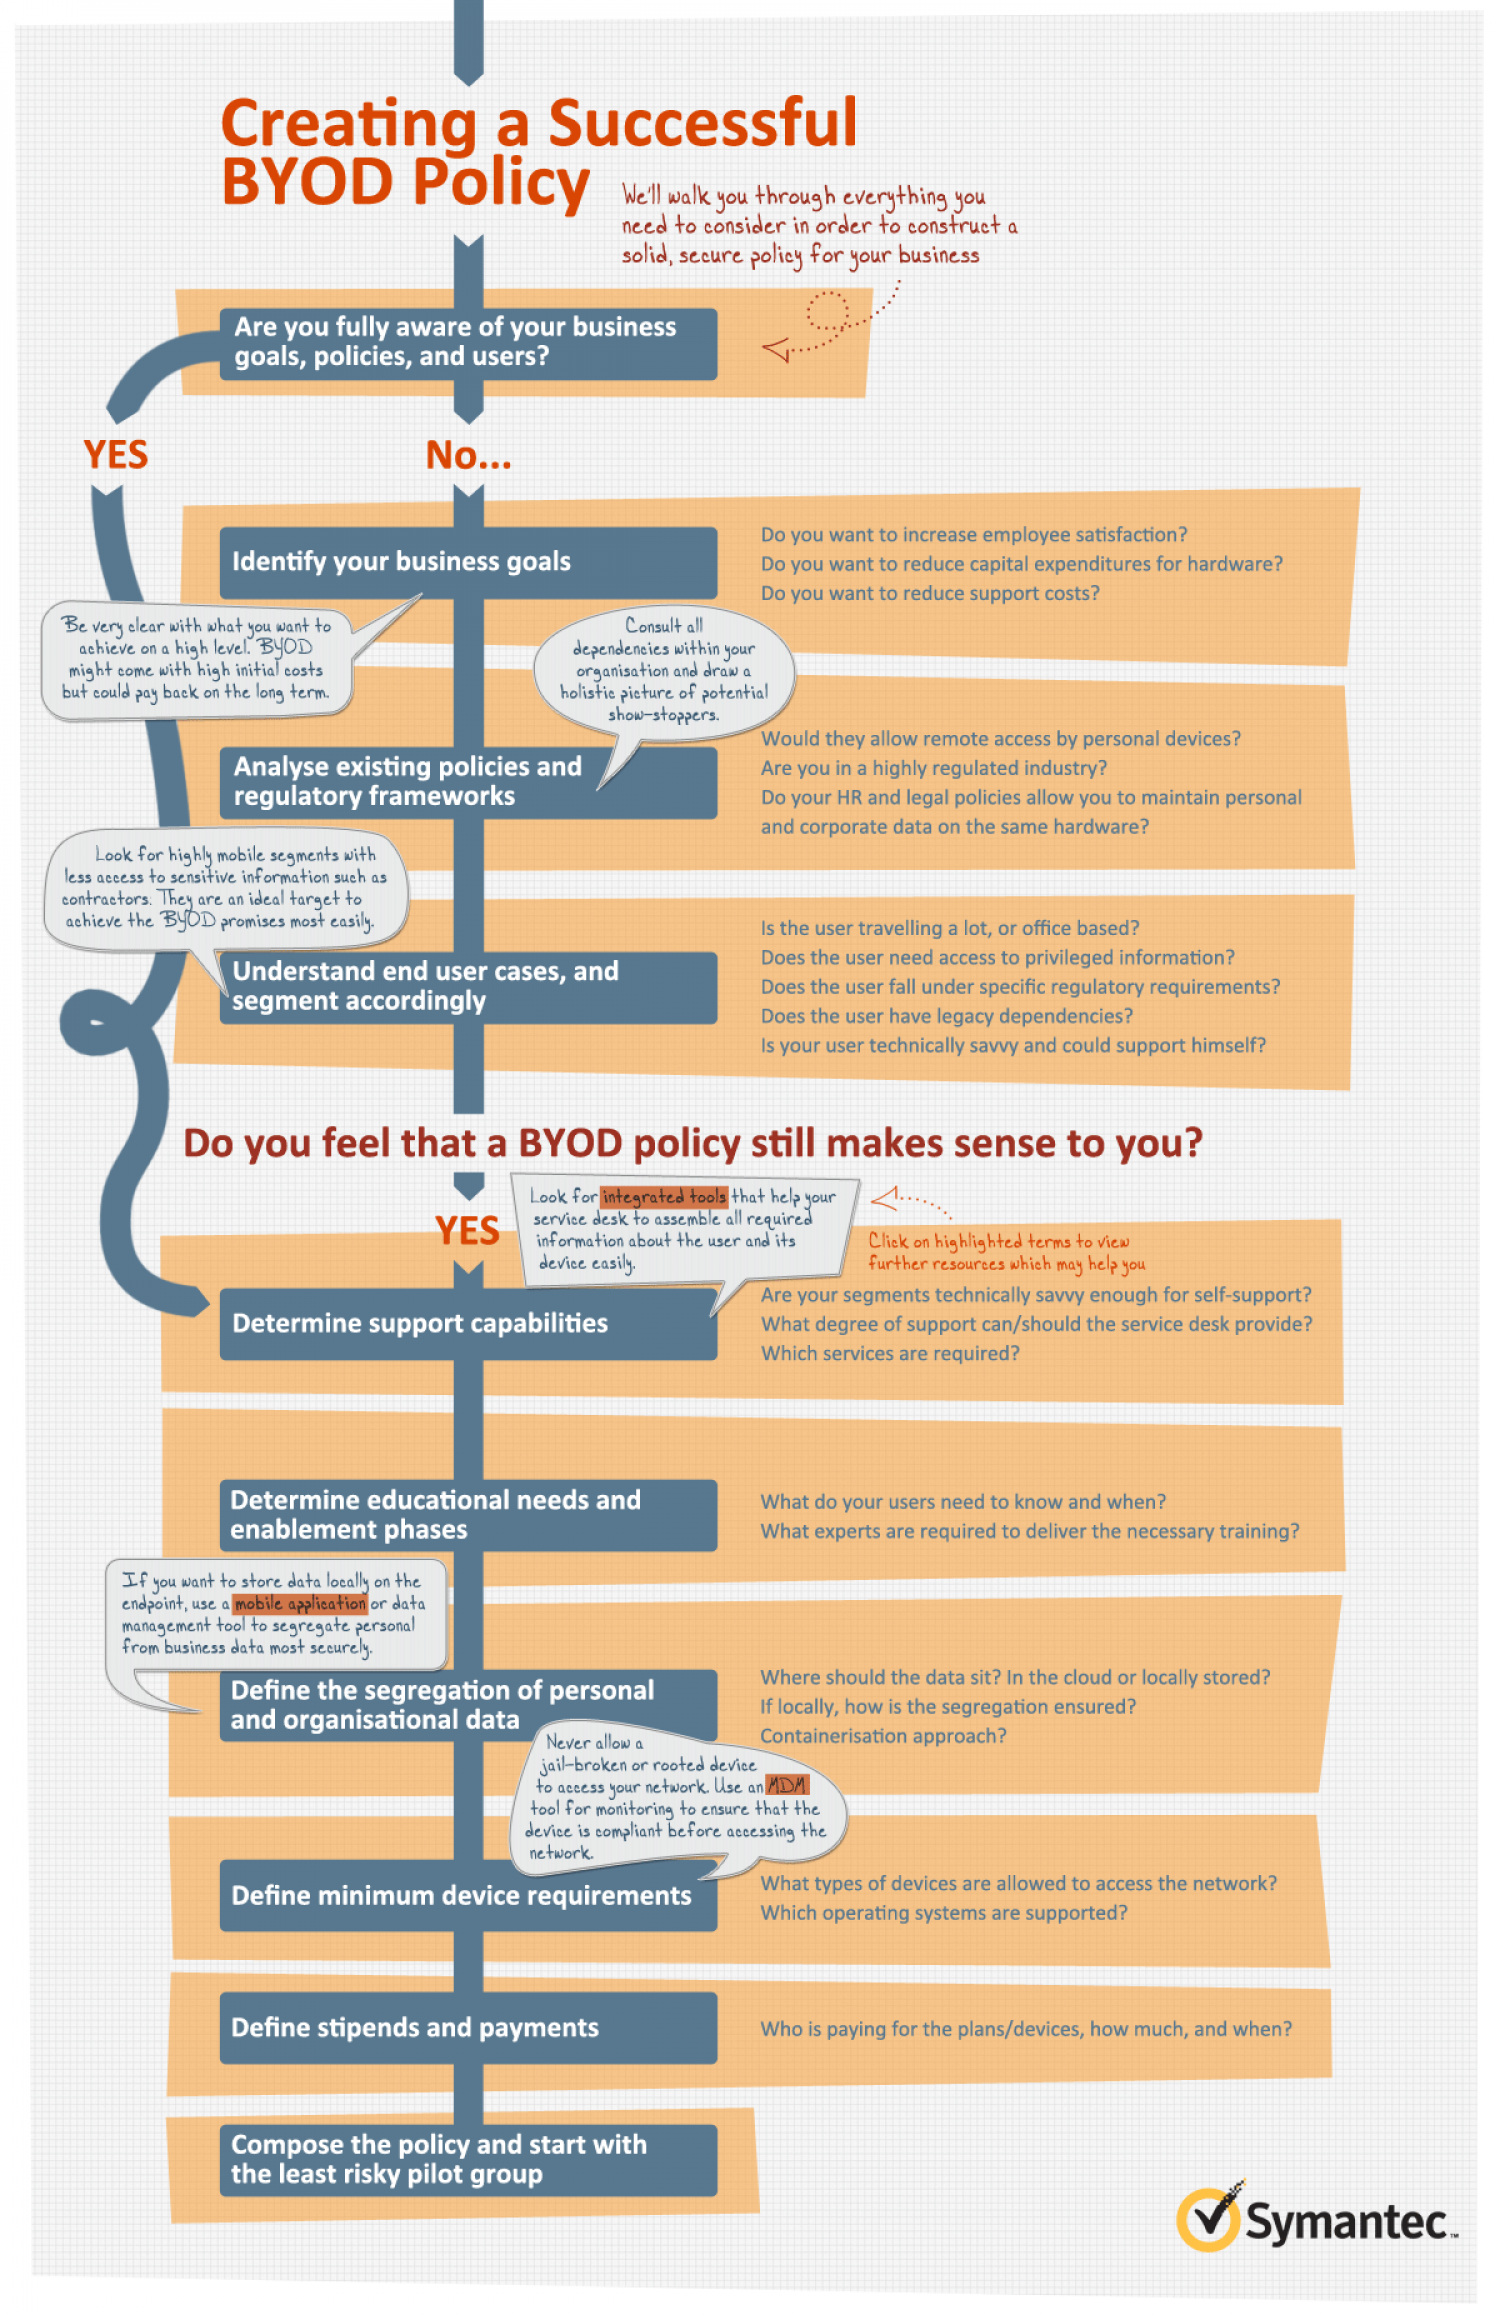 How to create a BYOD Policy Infographic